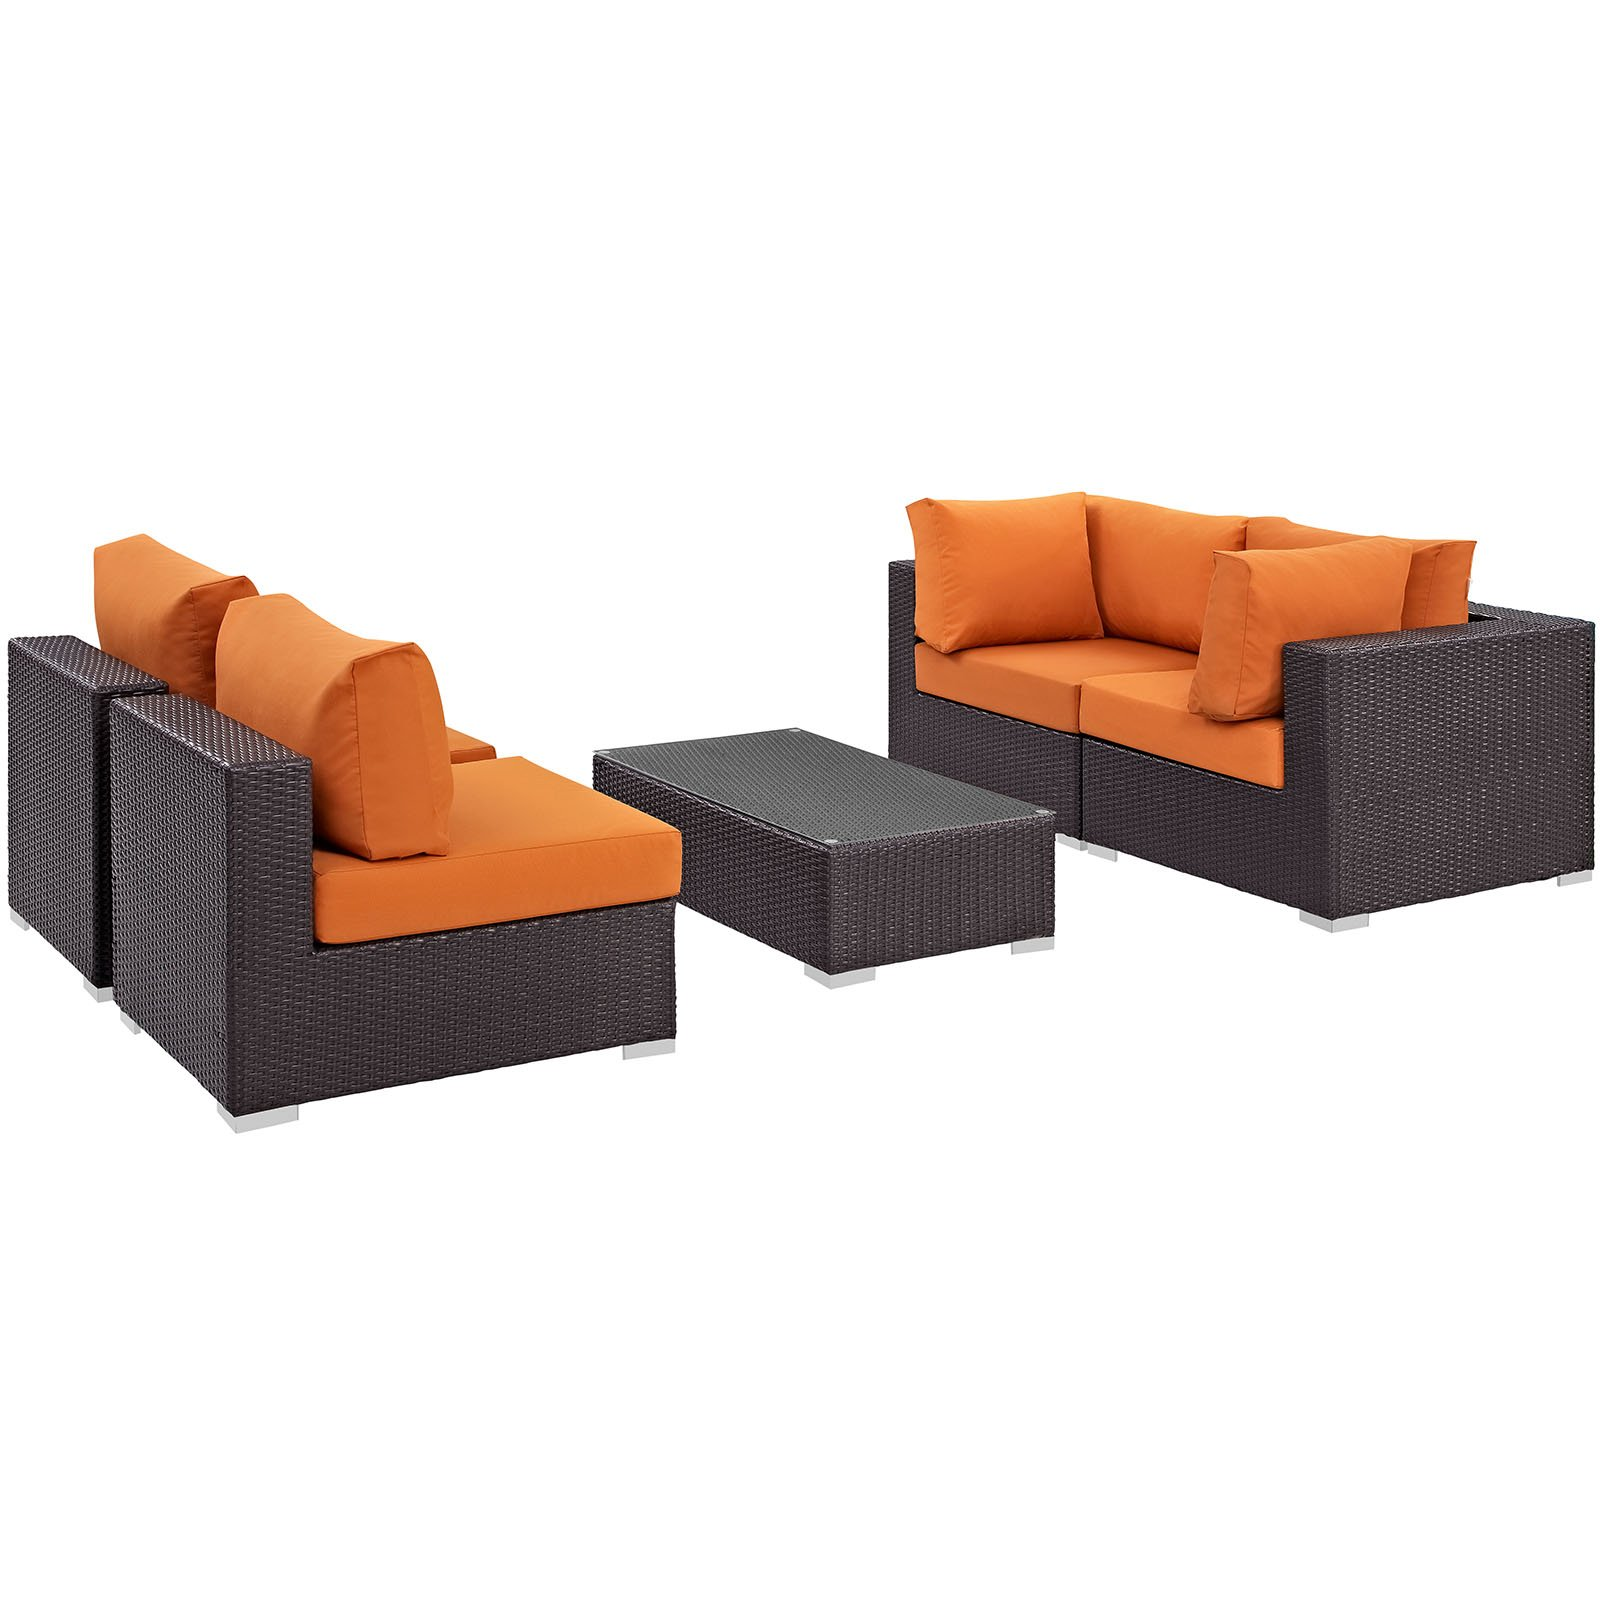 Convene 5 Piece Outdoor Patio Sectional Set Products